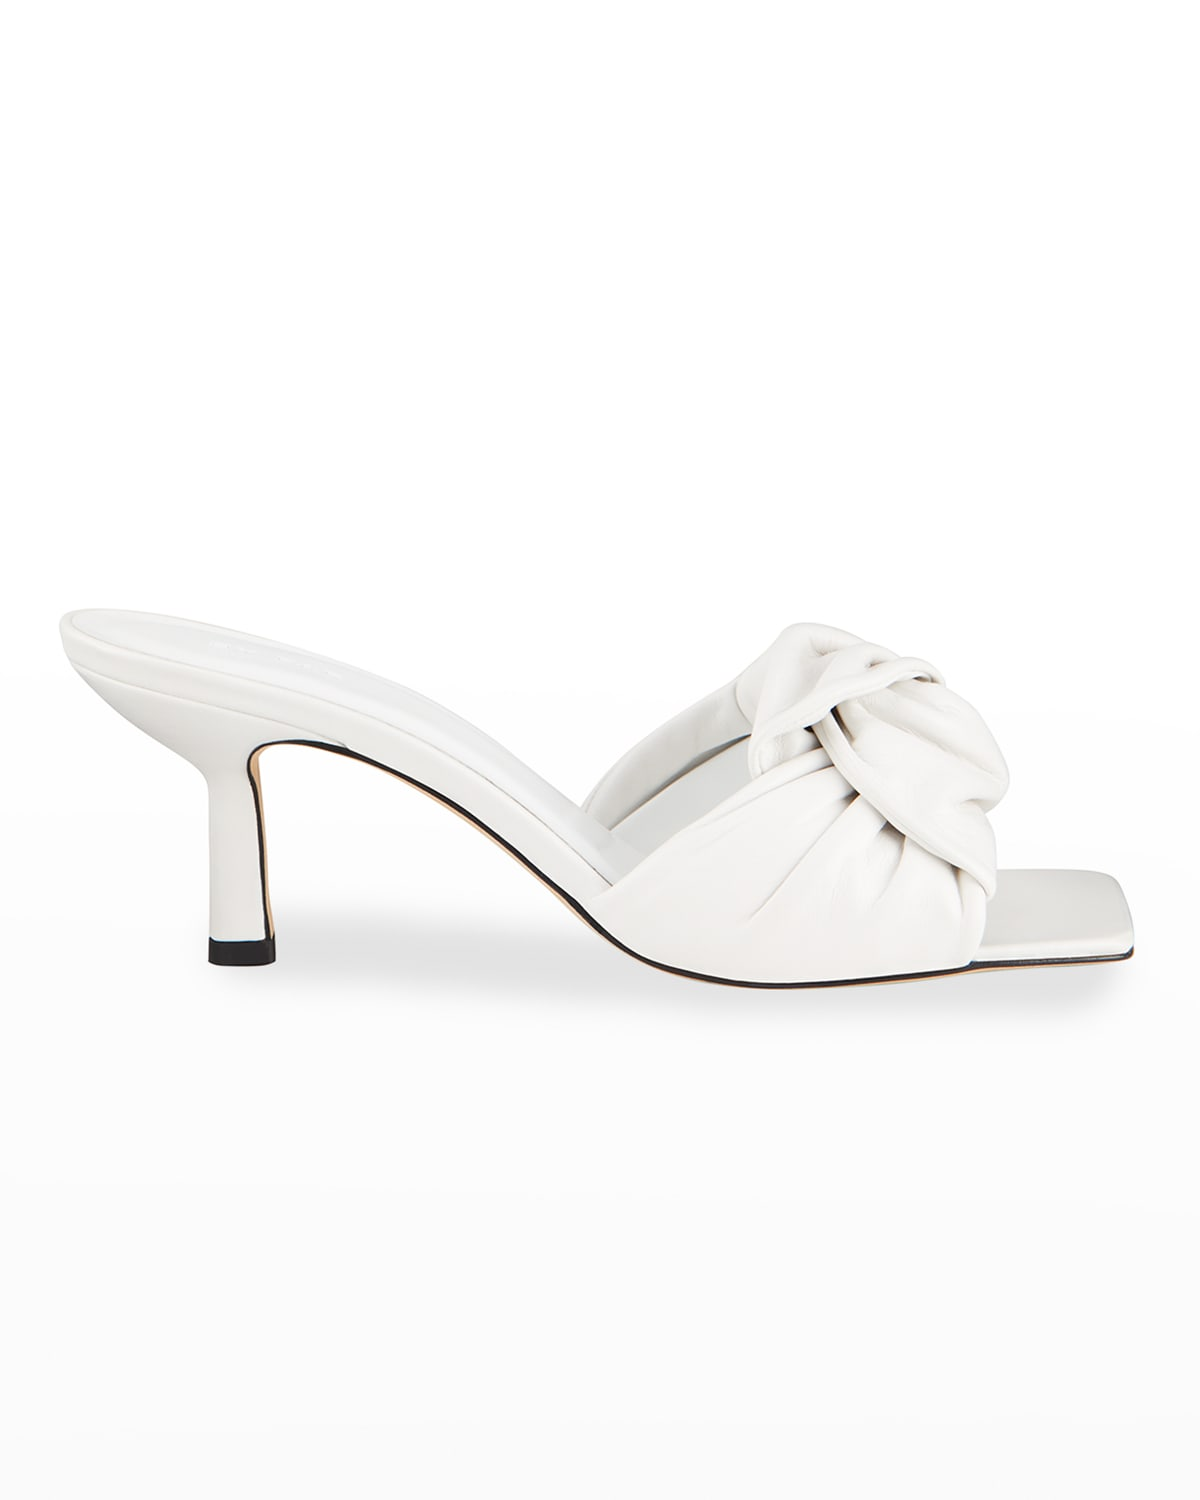 Lana Knotted Leather Slide Sandals